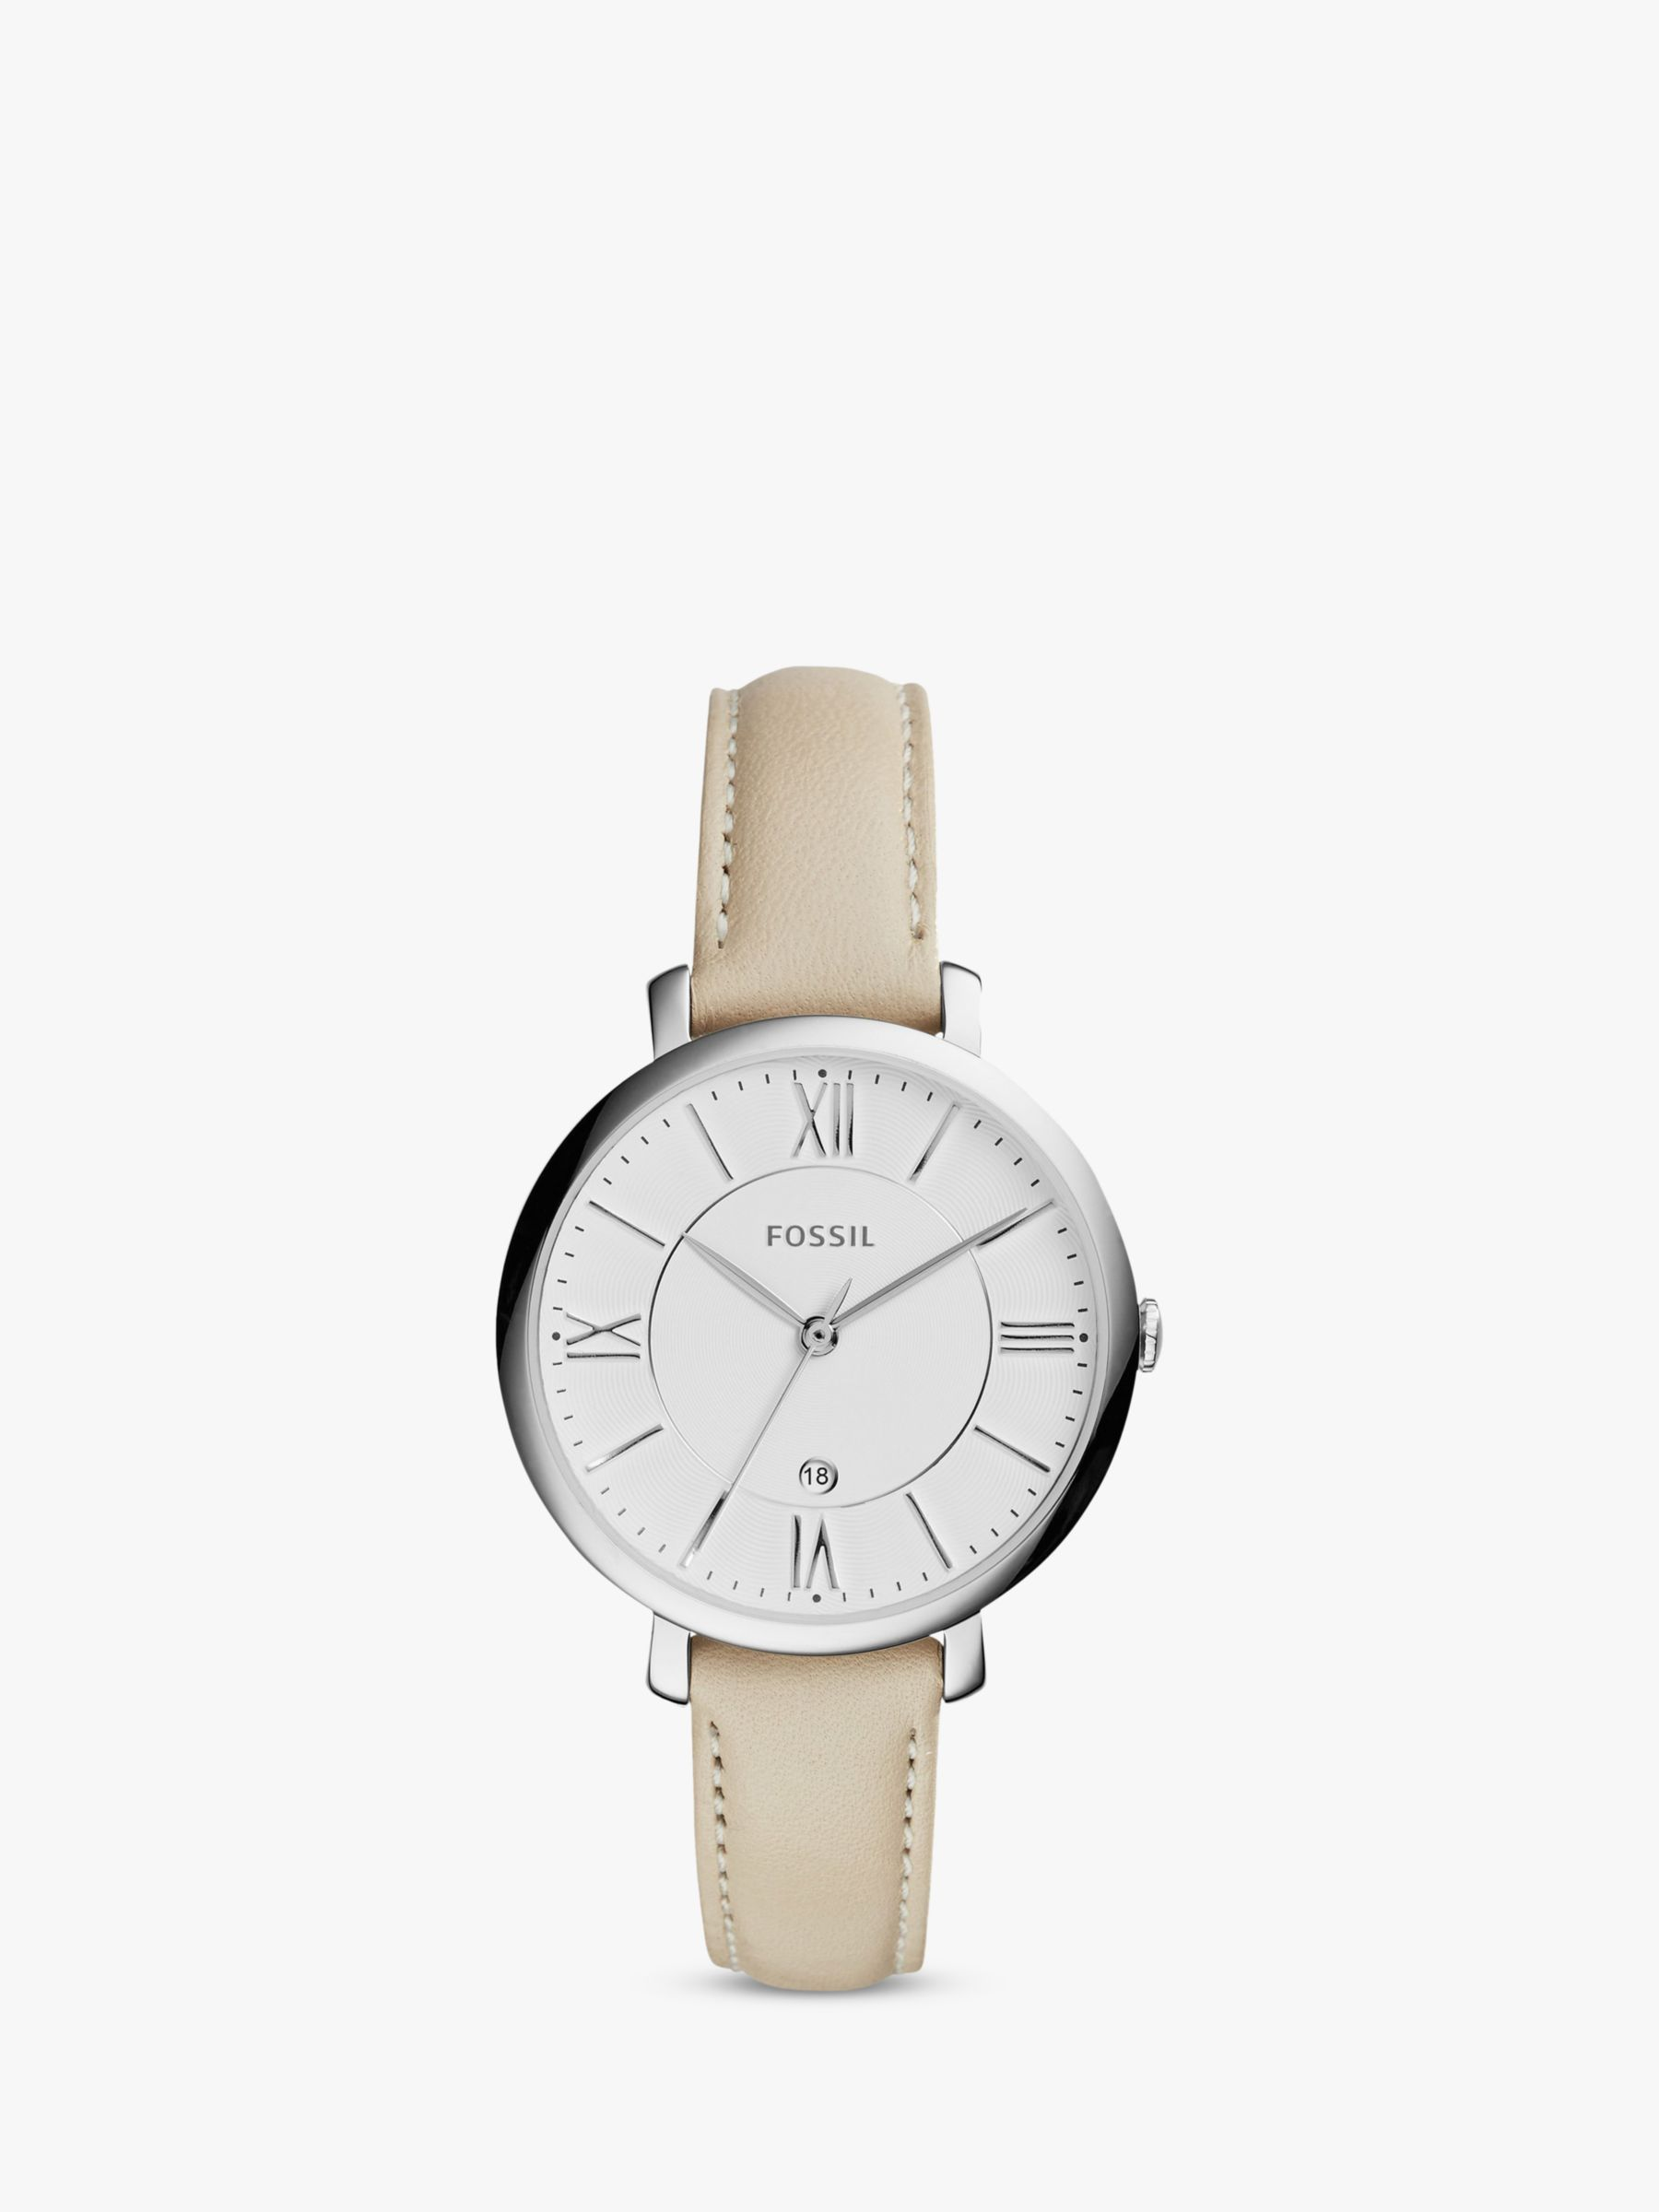 Fossil Fossil Women's Jacqueline Date Leather Strap Watch